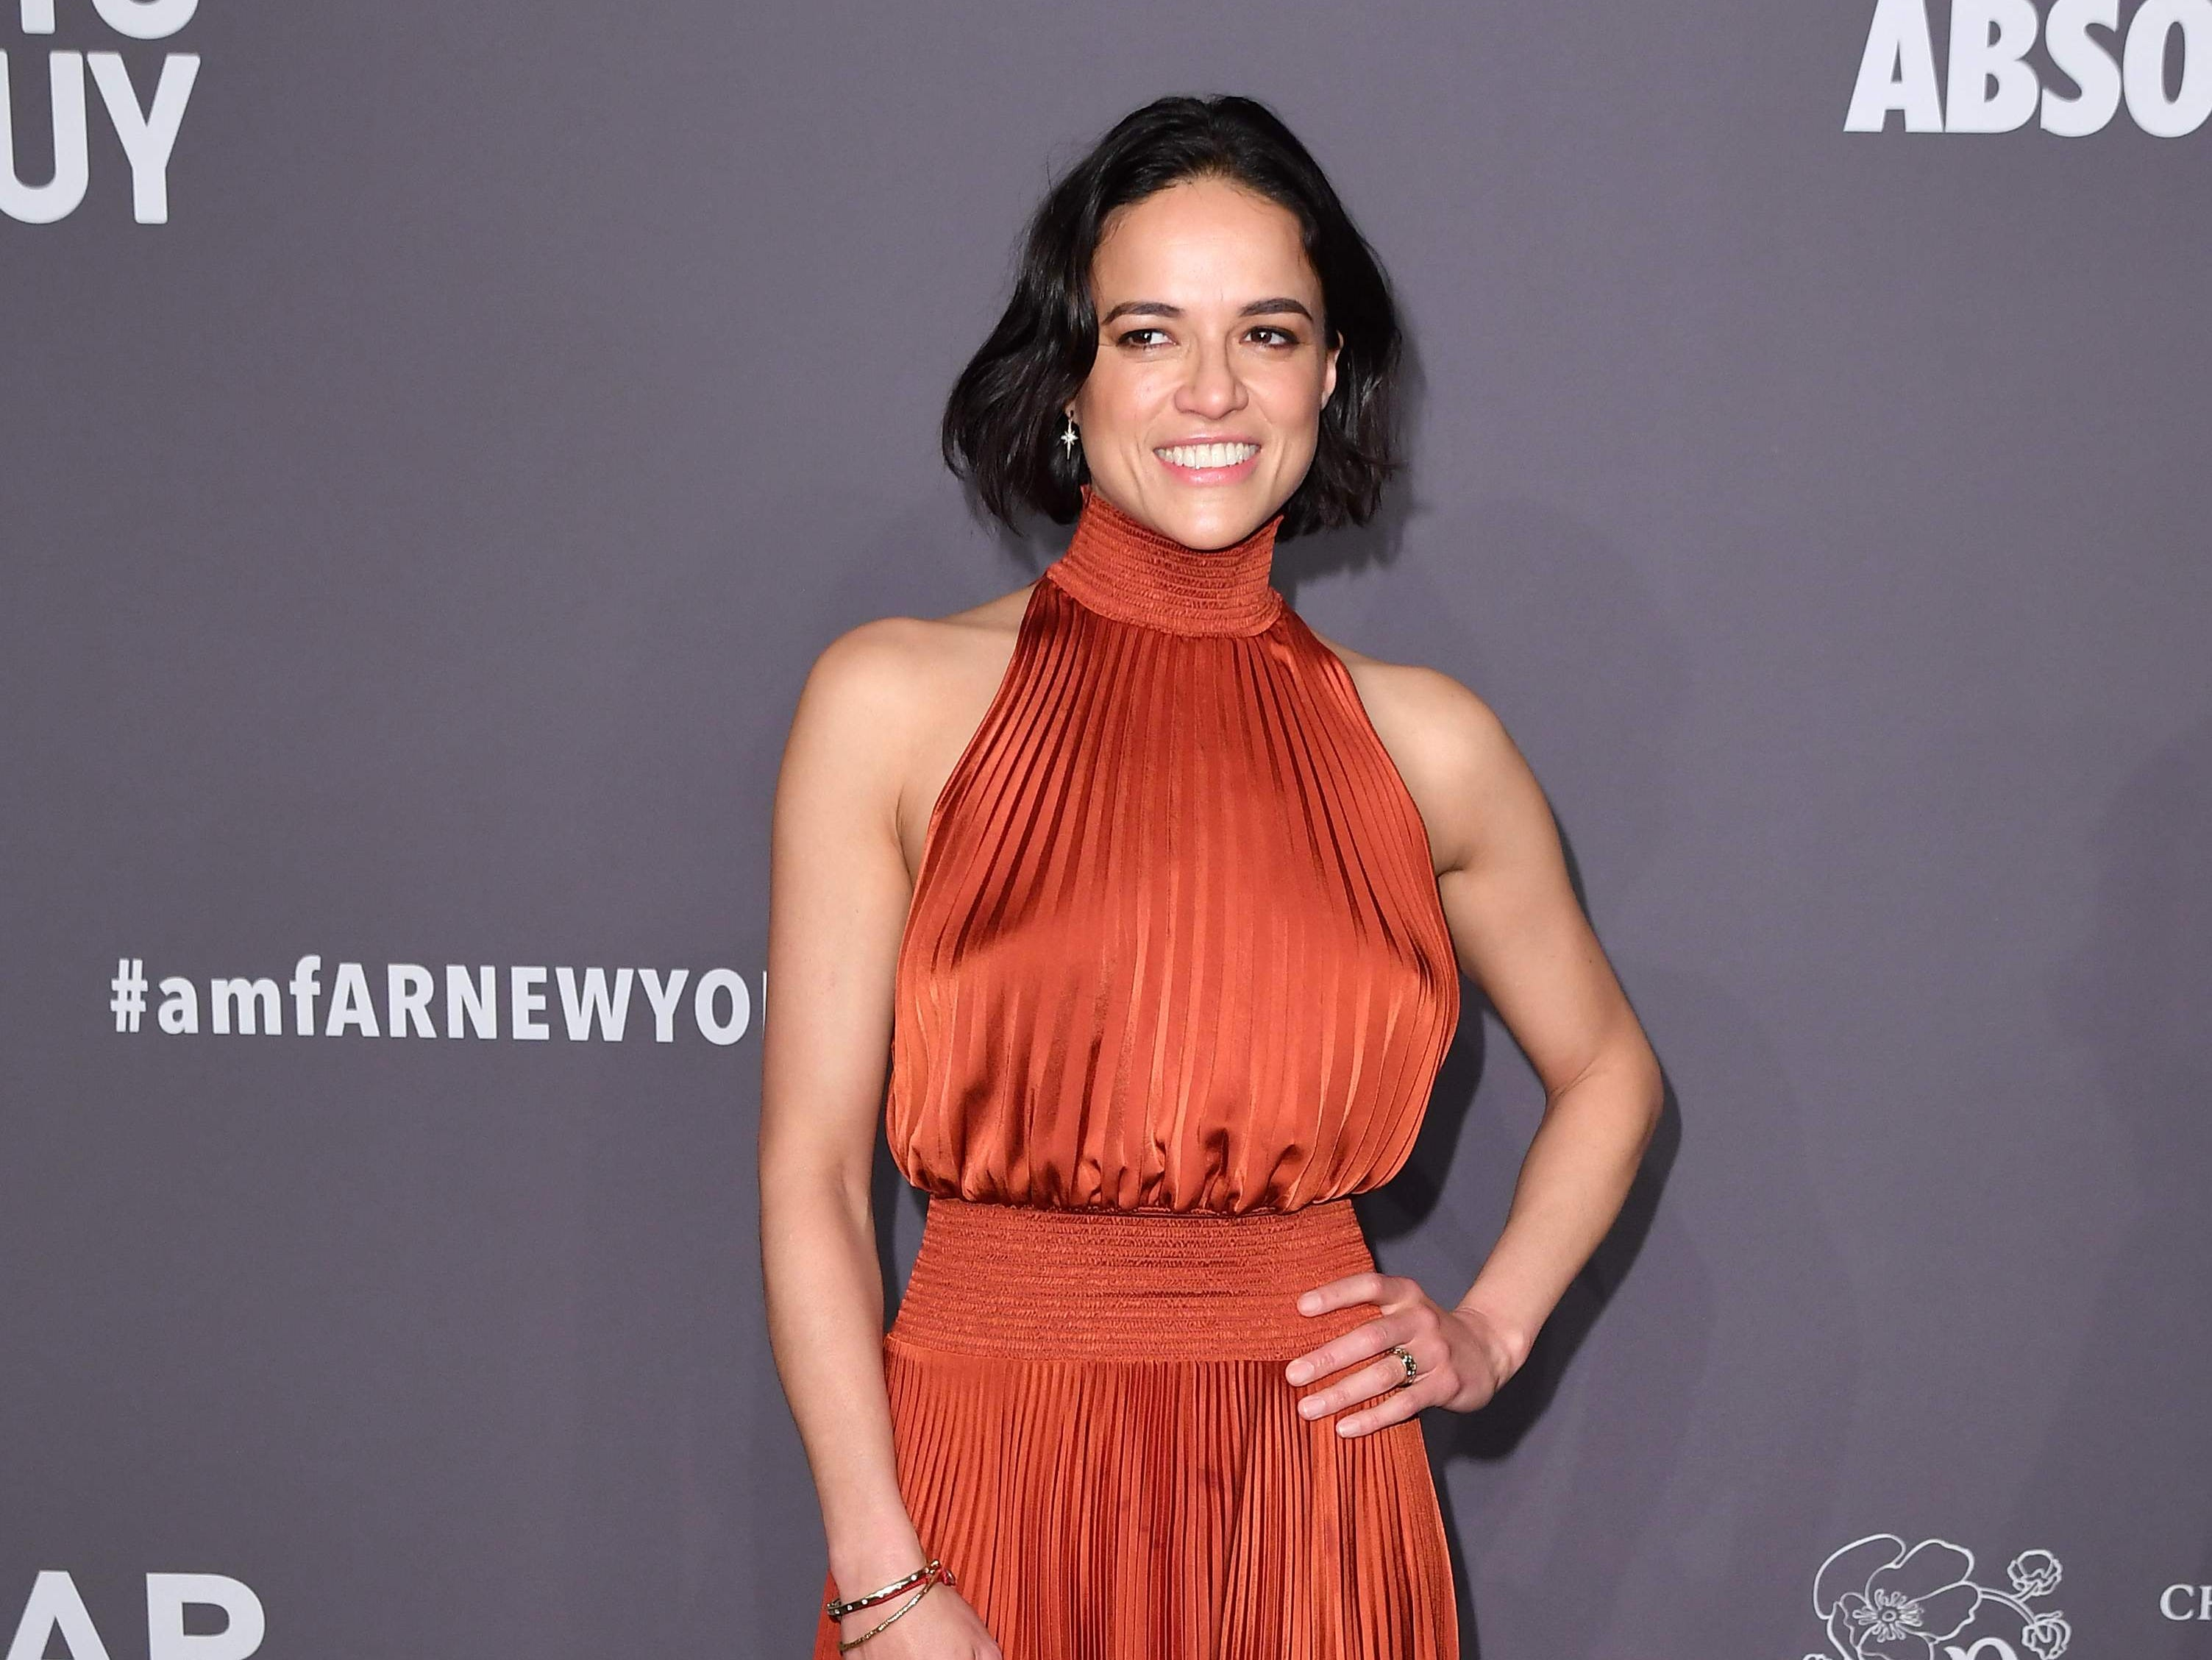 Actress Michelle Rodriguez arrives to attend the amfAR Gala New York at Cipriani Wall Street in New York City on February 6, 2019. (Photo by ANGELA WEISS / AFP)ANGELA WEISS/AFP/Getty Images ORIG FILE ID: AFP_1D4681